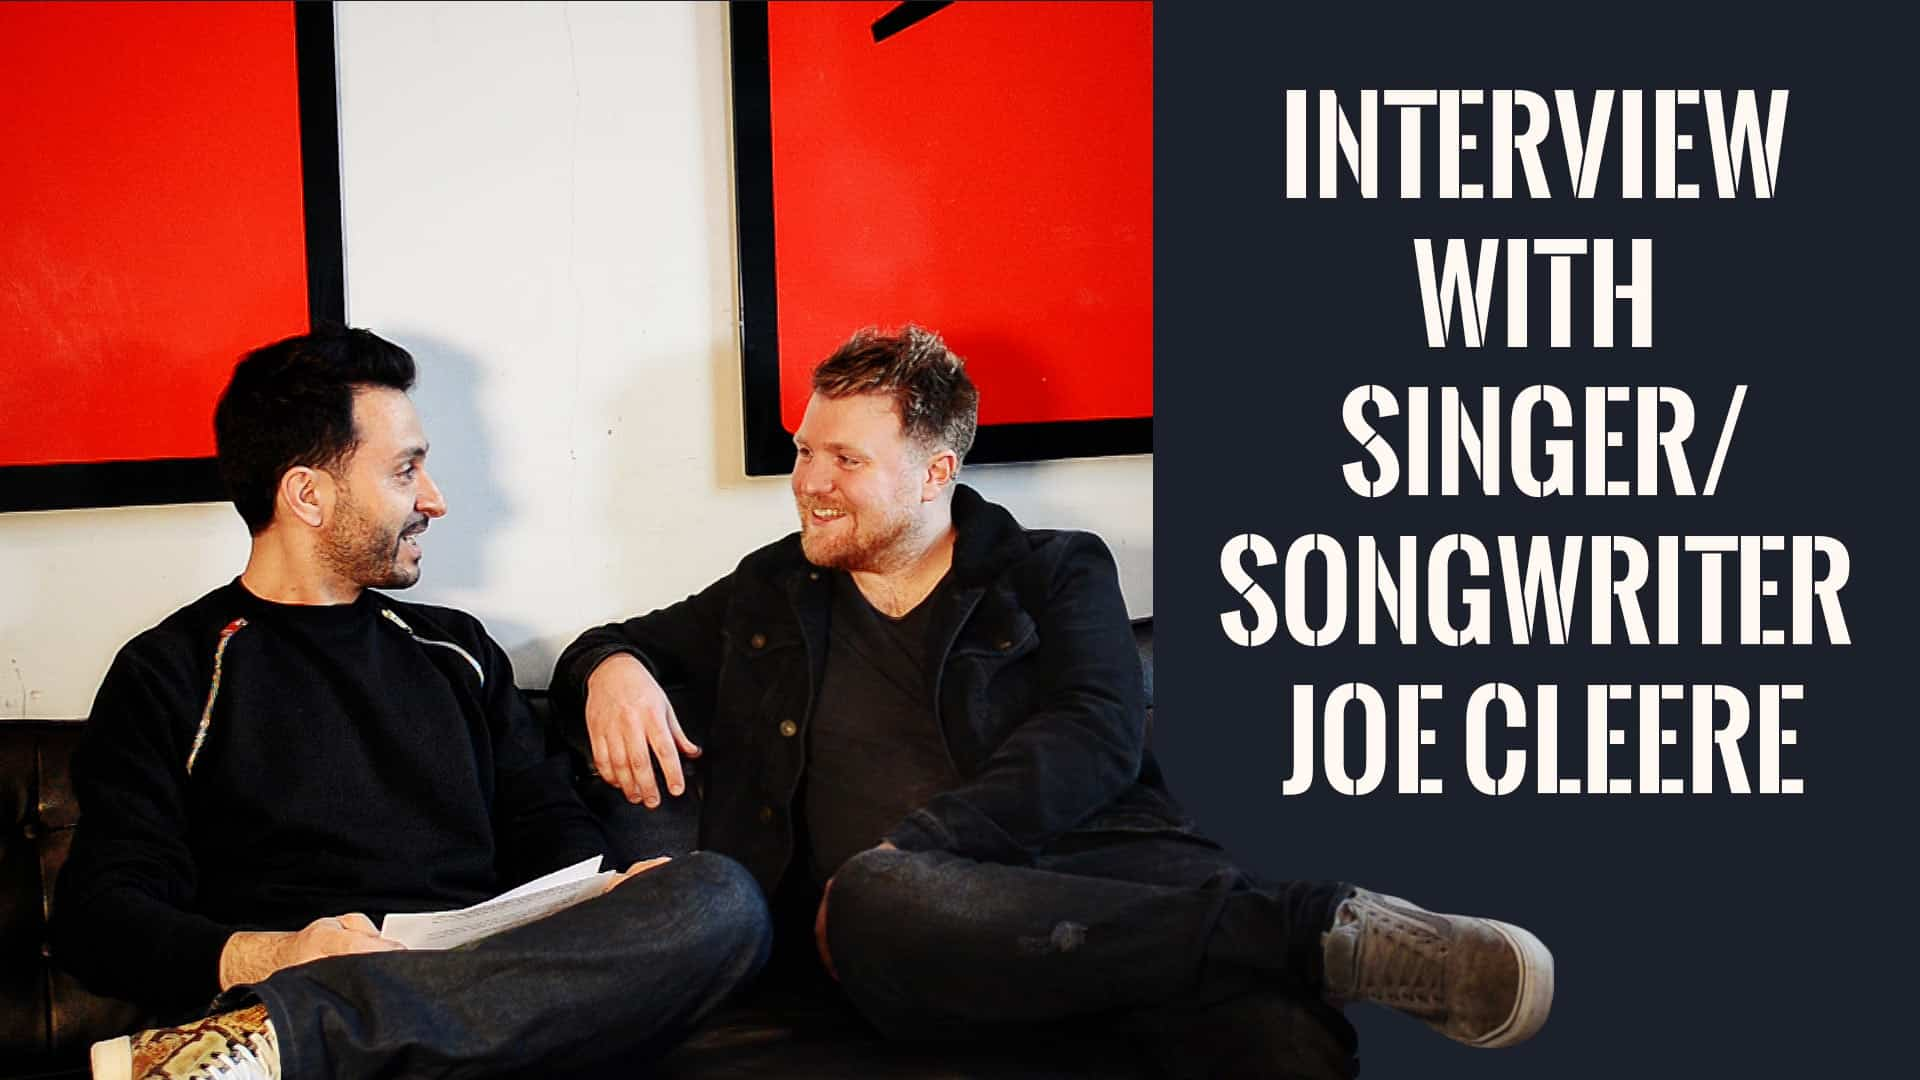 Interview with singer/songwriter Joe Cleere